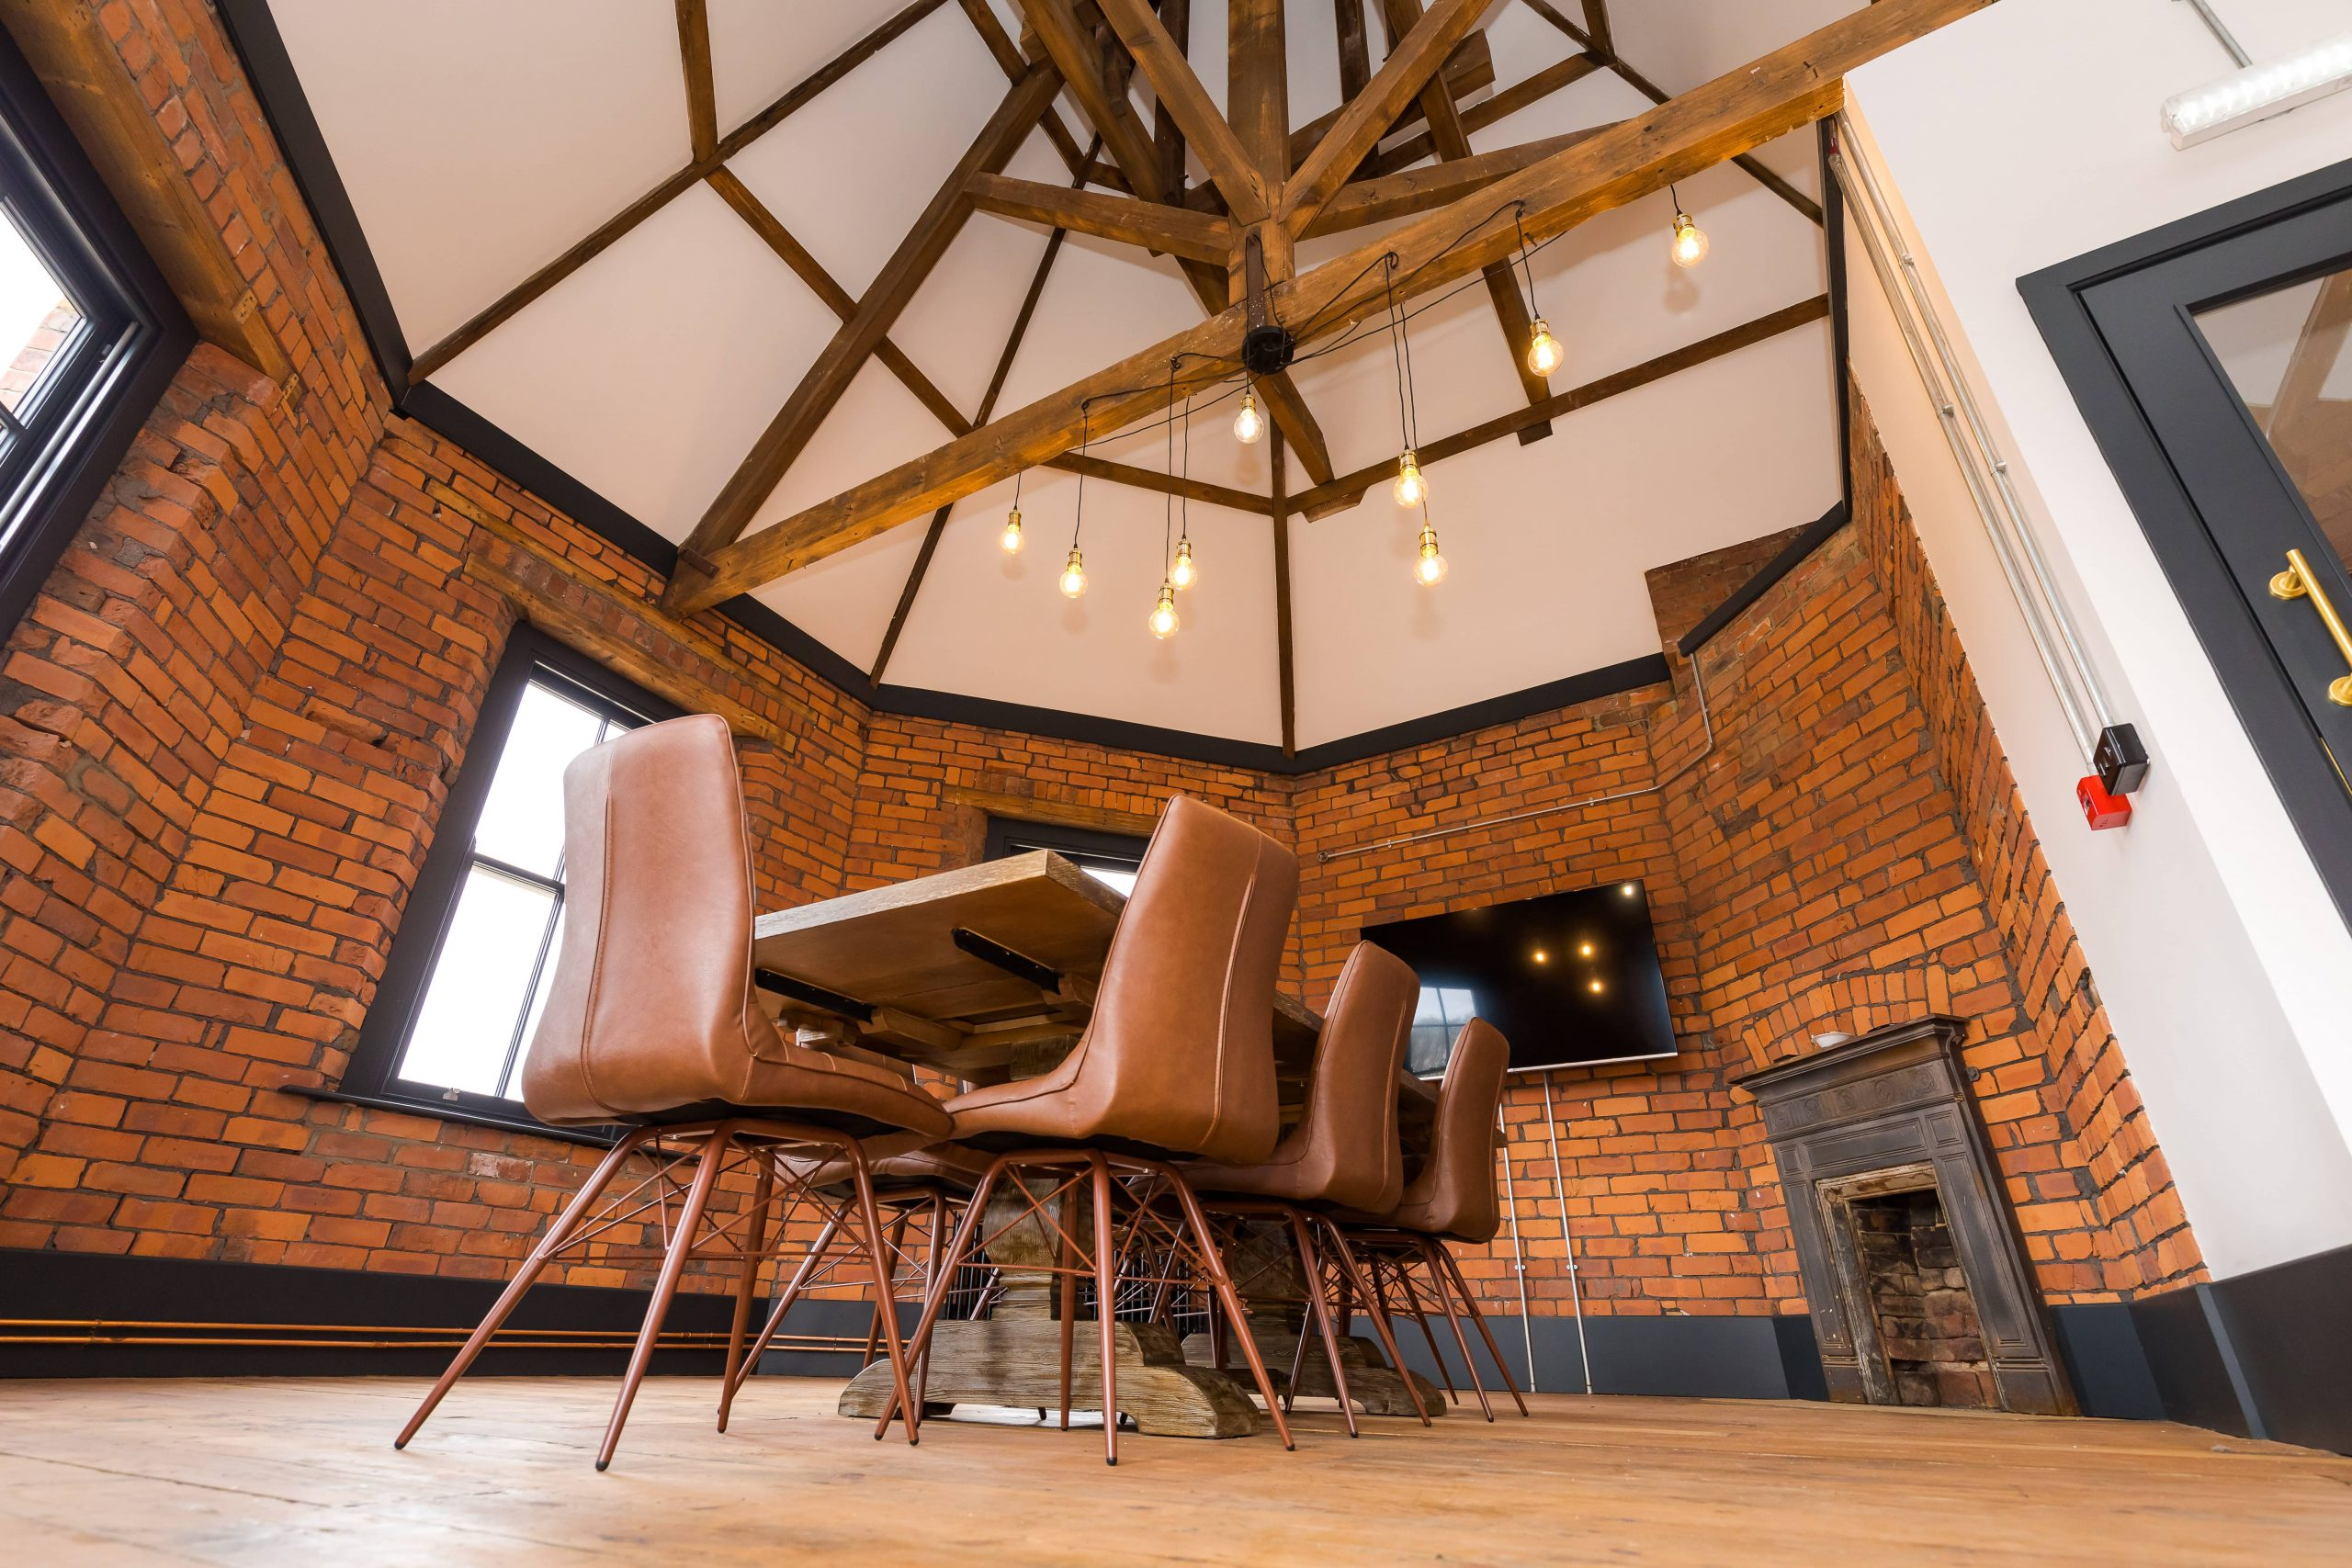 Simpson Street Wins North East Fit Out / Refurbishment of the Year